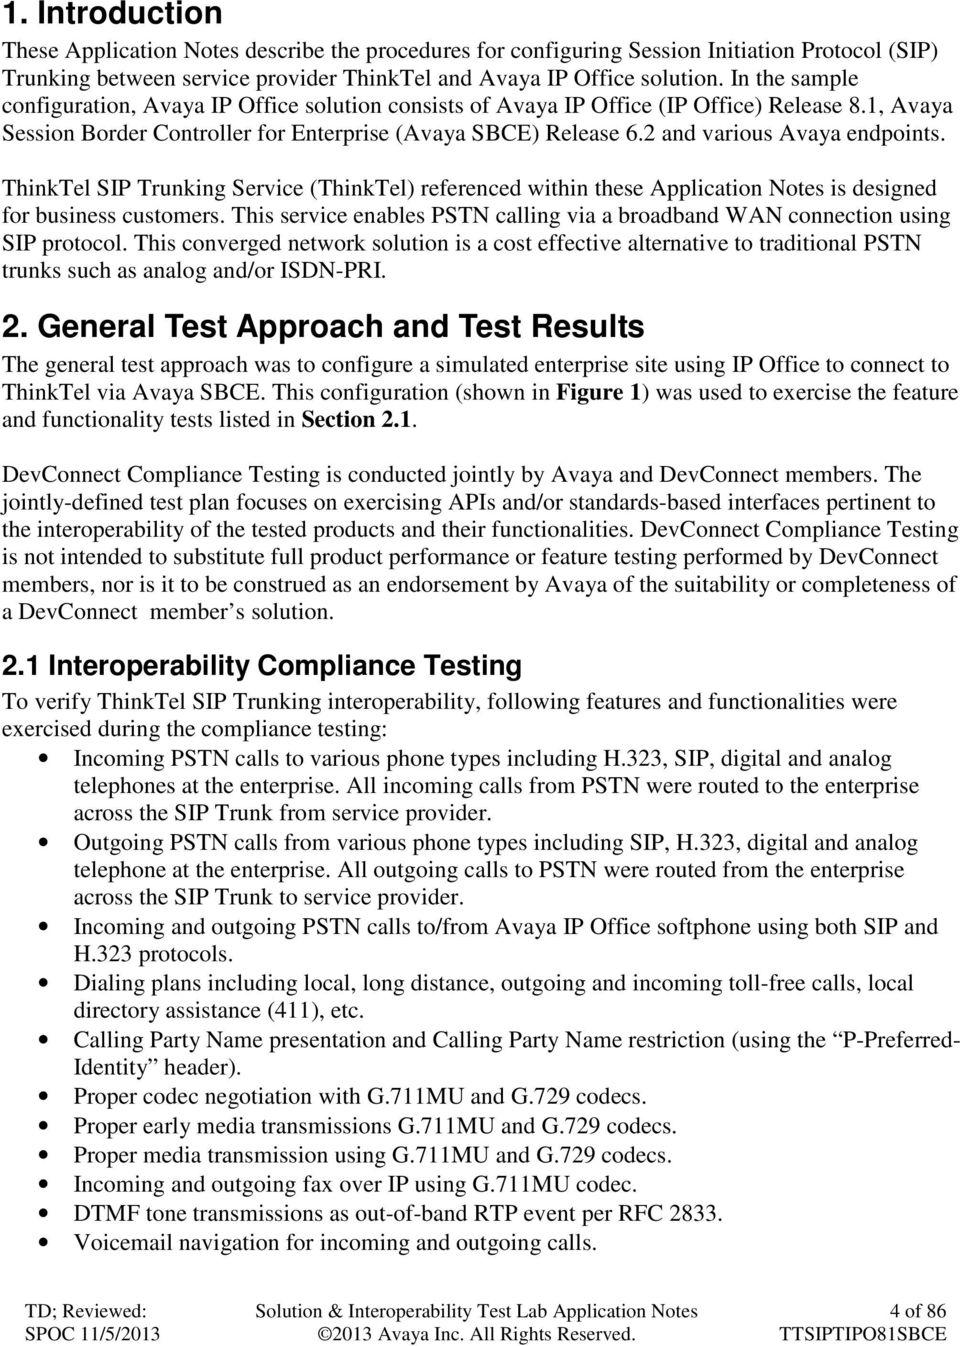 2 and various Avaya endpoints. ThinkTel SIP Trunking Service (ThinkTel) referenced within these Application Notes is designed for business customers.